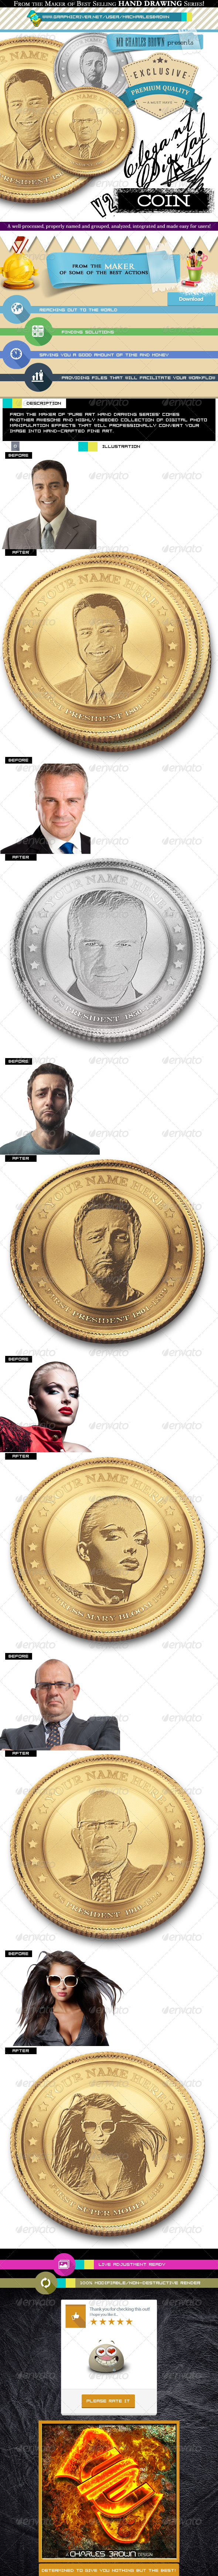 GraphicRiver Elegant Digital Art Imagining 2 Face on Coin 7049501